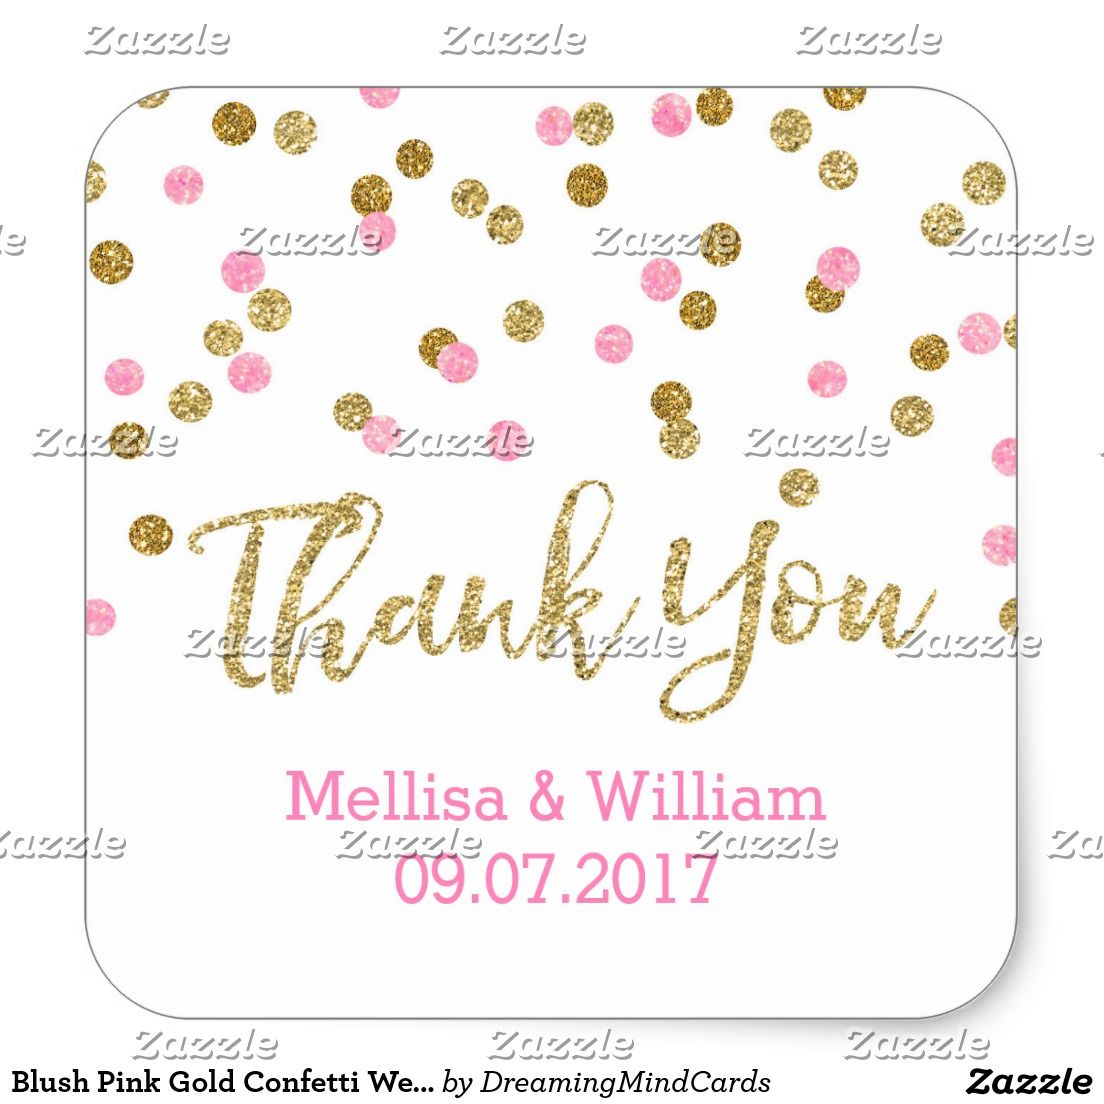 Blush Pink Gold Confetti Wedding Favor Tags | Wedding favor tags ...